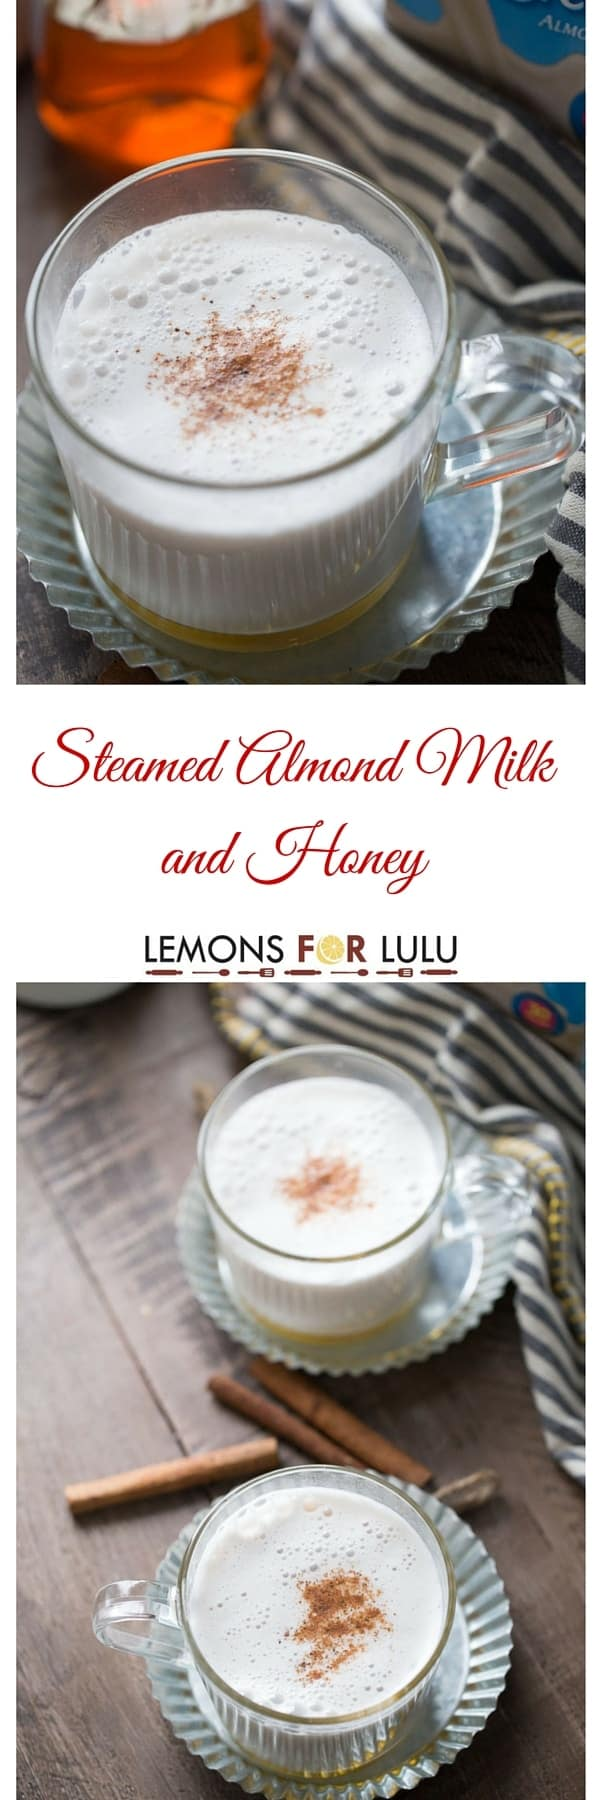 Nothing is quite as comforting as a mug of warm milk. This simple recipe is made with cinnamon infused almond milk that is poured over honey! This beverage is sweet, calming and delicious! lemonsforlulu.com